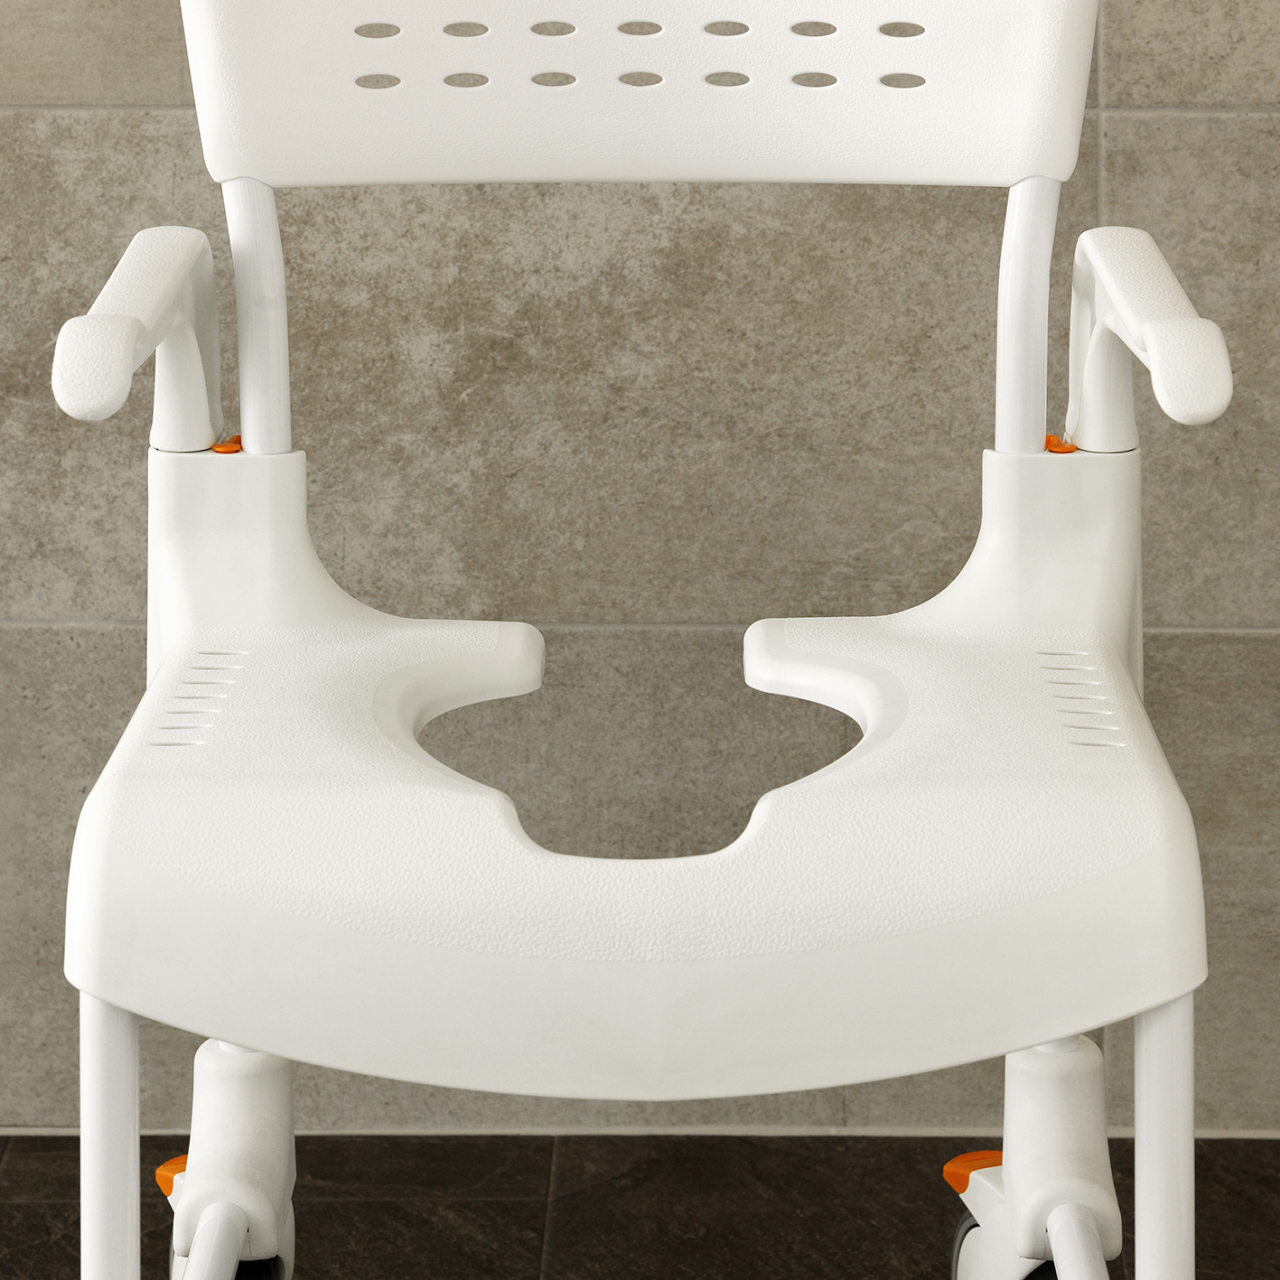 shower chair singapore antique white round table and chairs etac clean commode